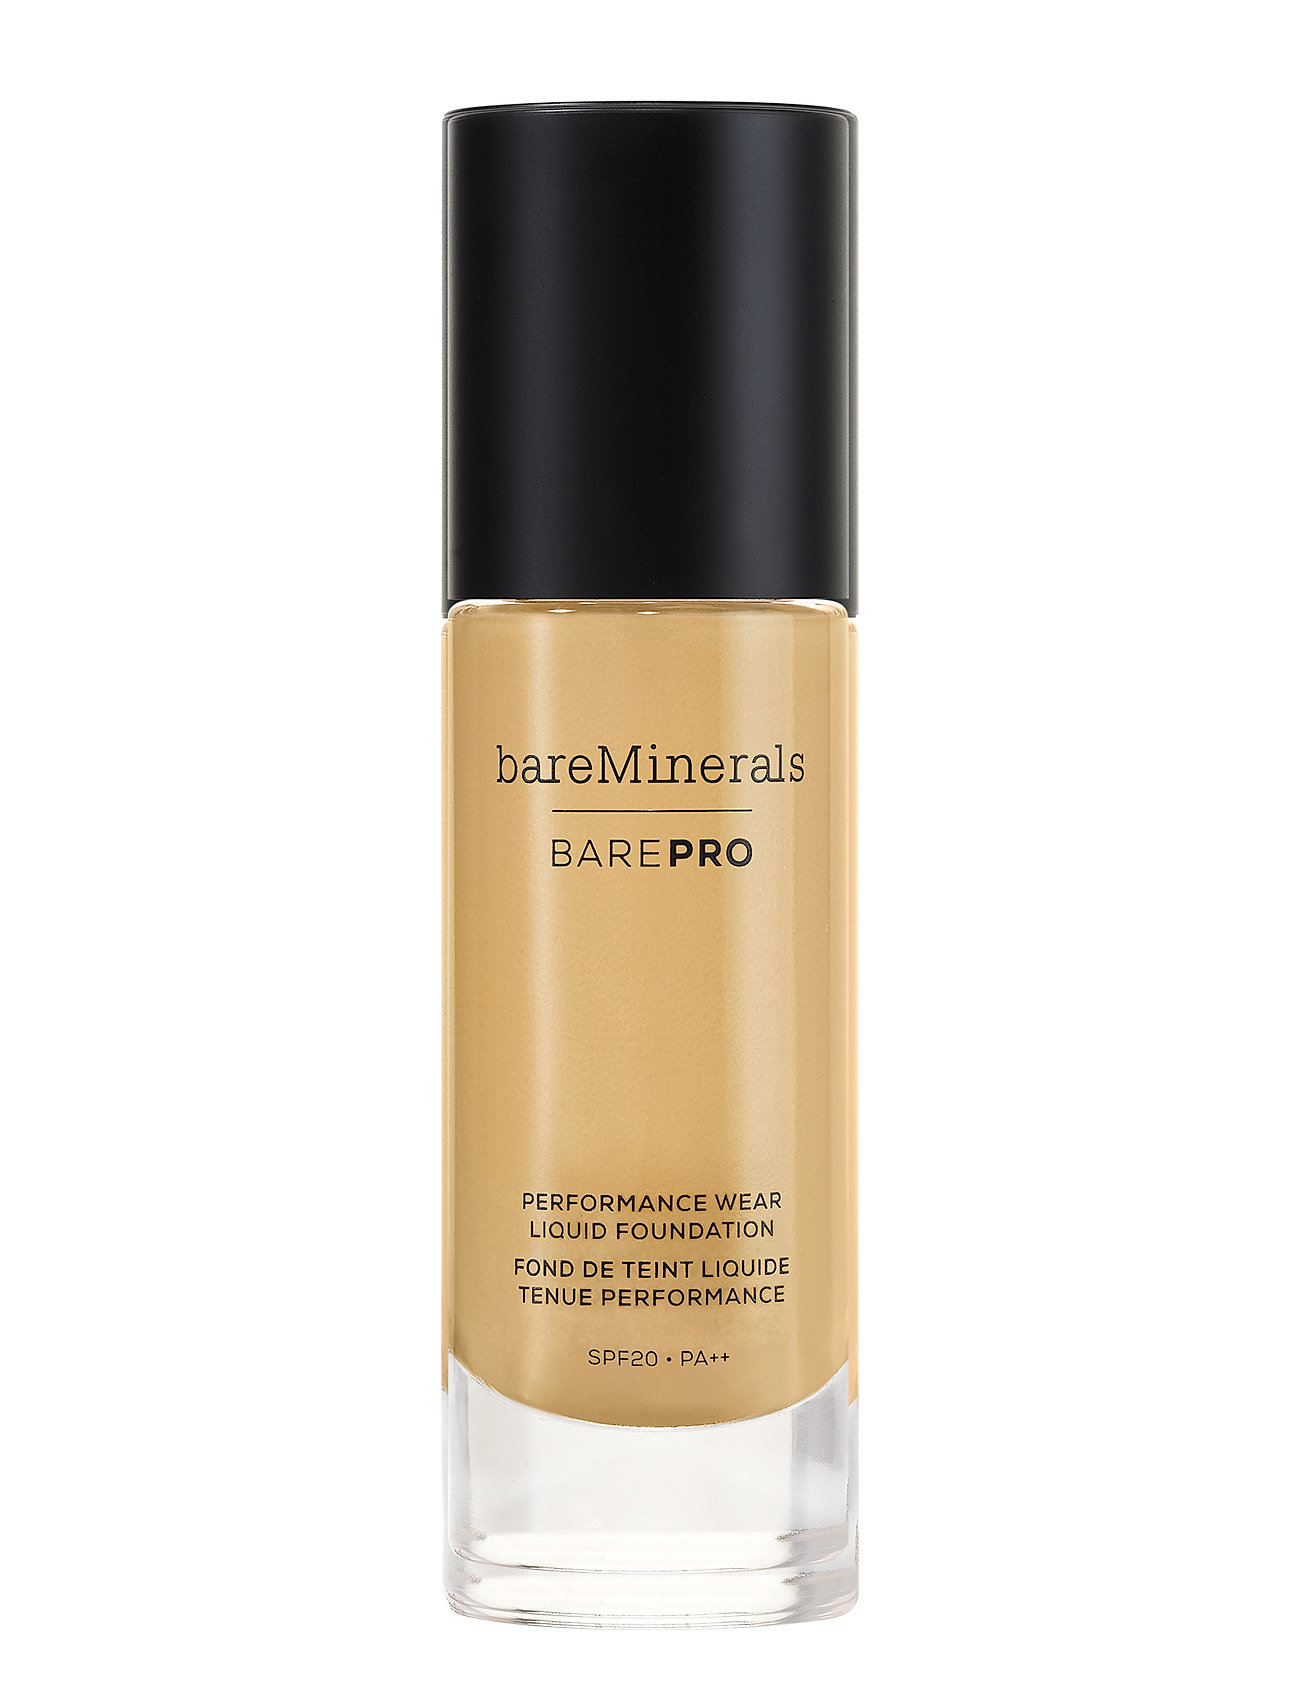 Image of Barepro Performance Wear Liquid Foundation Spf 20 Foundation Makeup BareMinerals (3067521597)